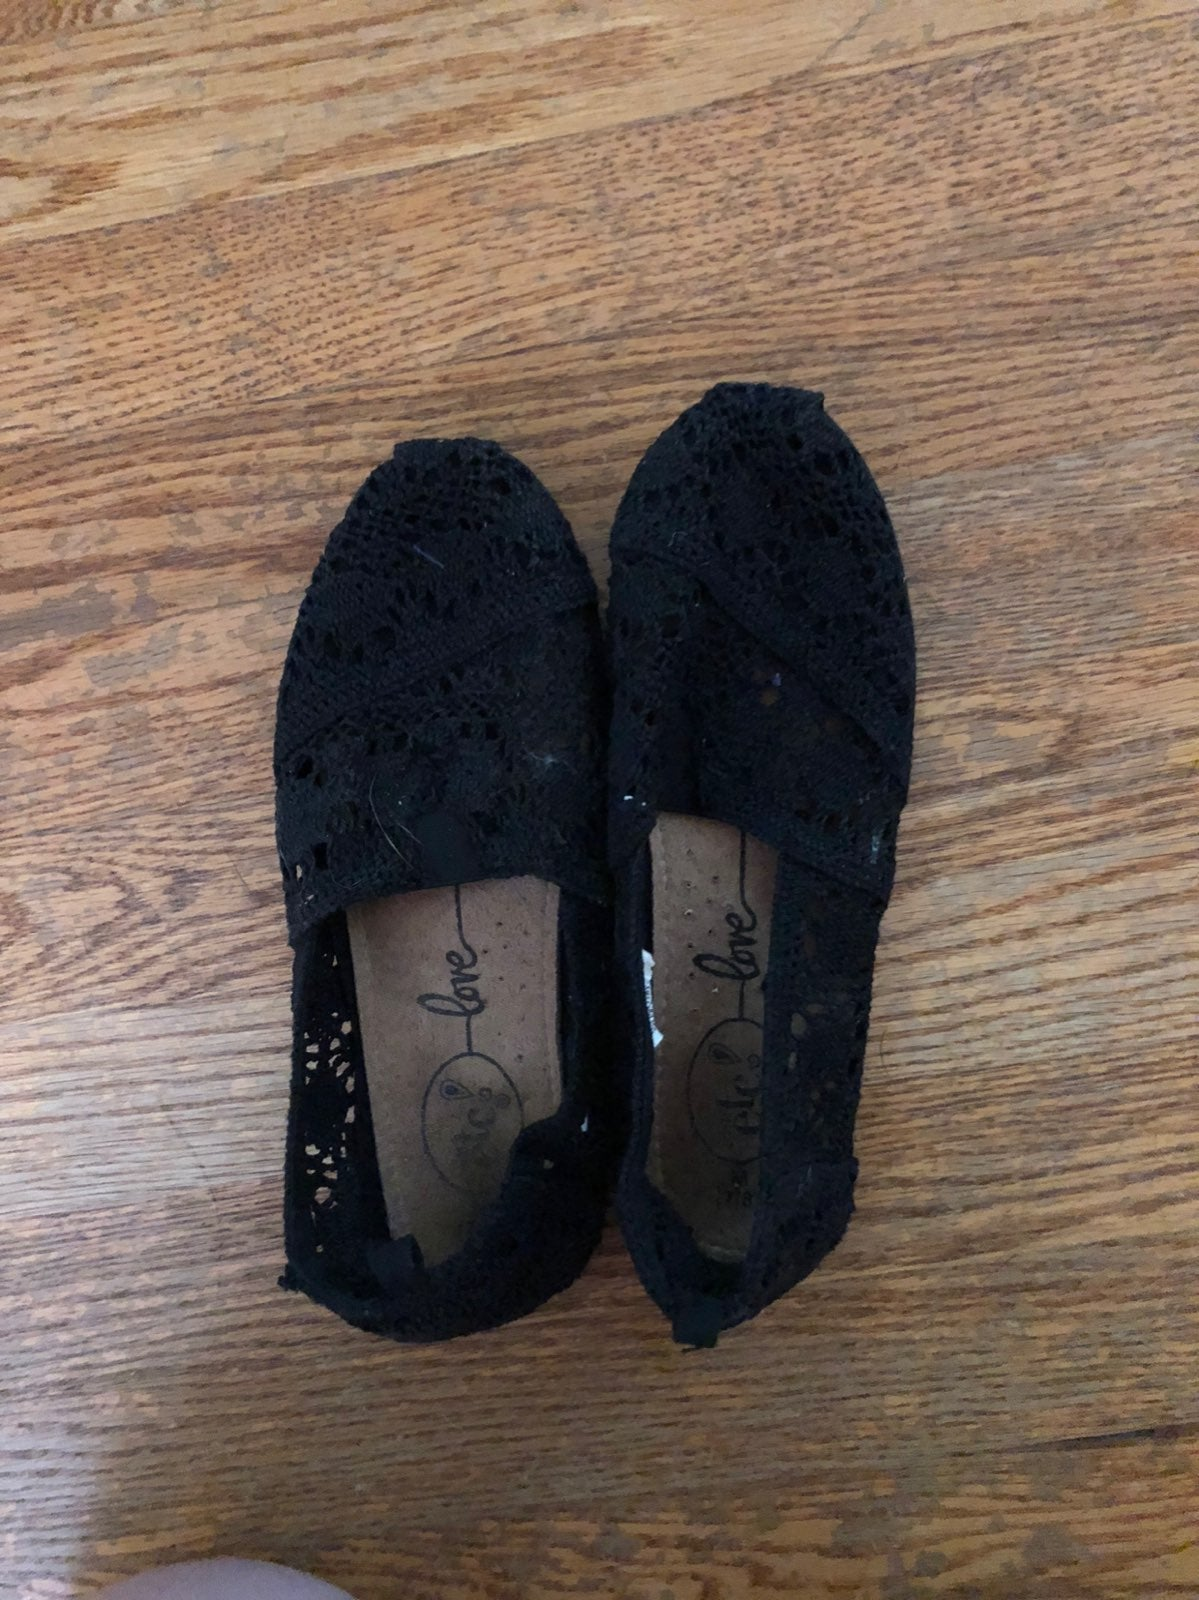 Lace Toms-Looking Shoes